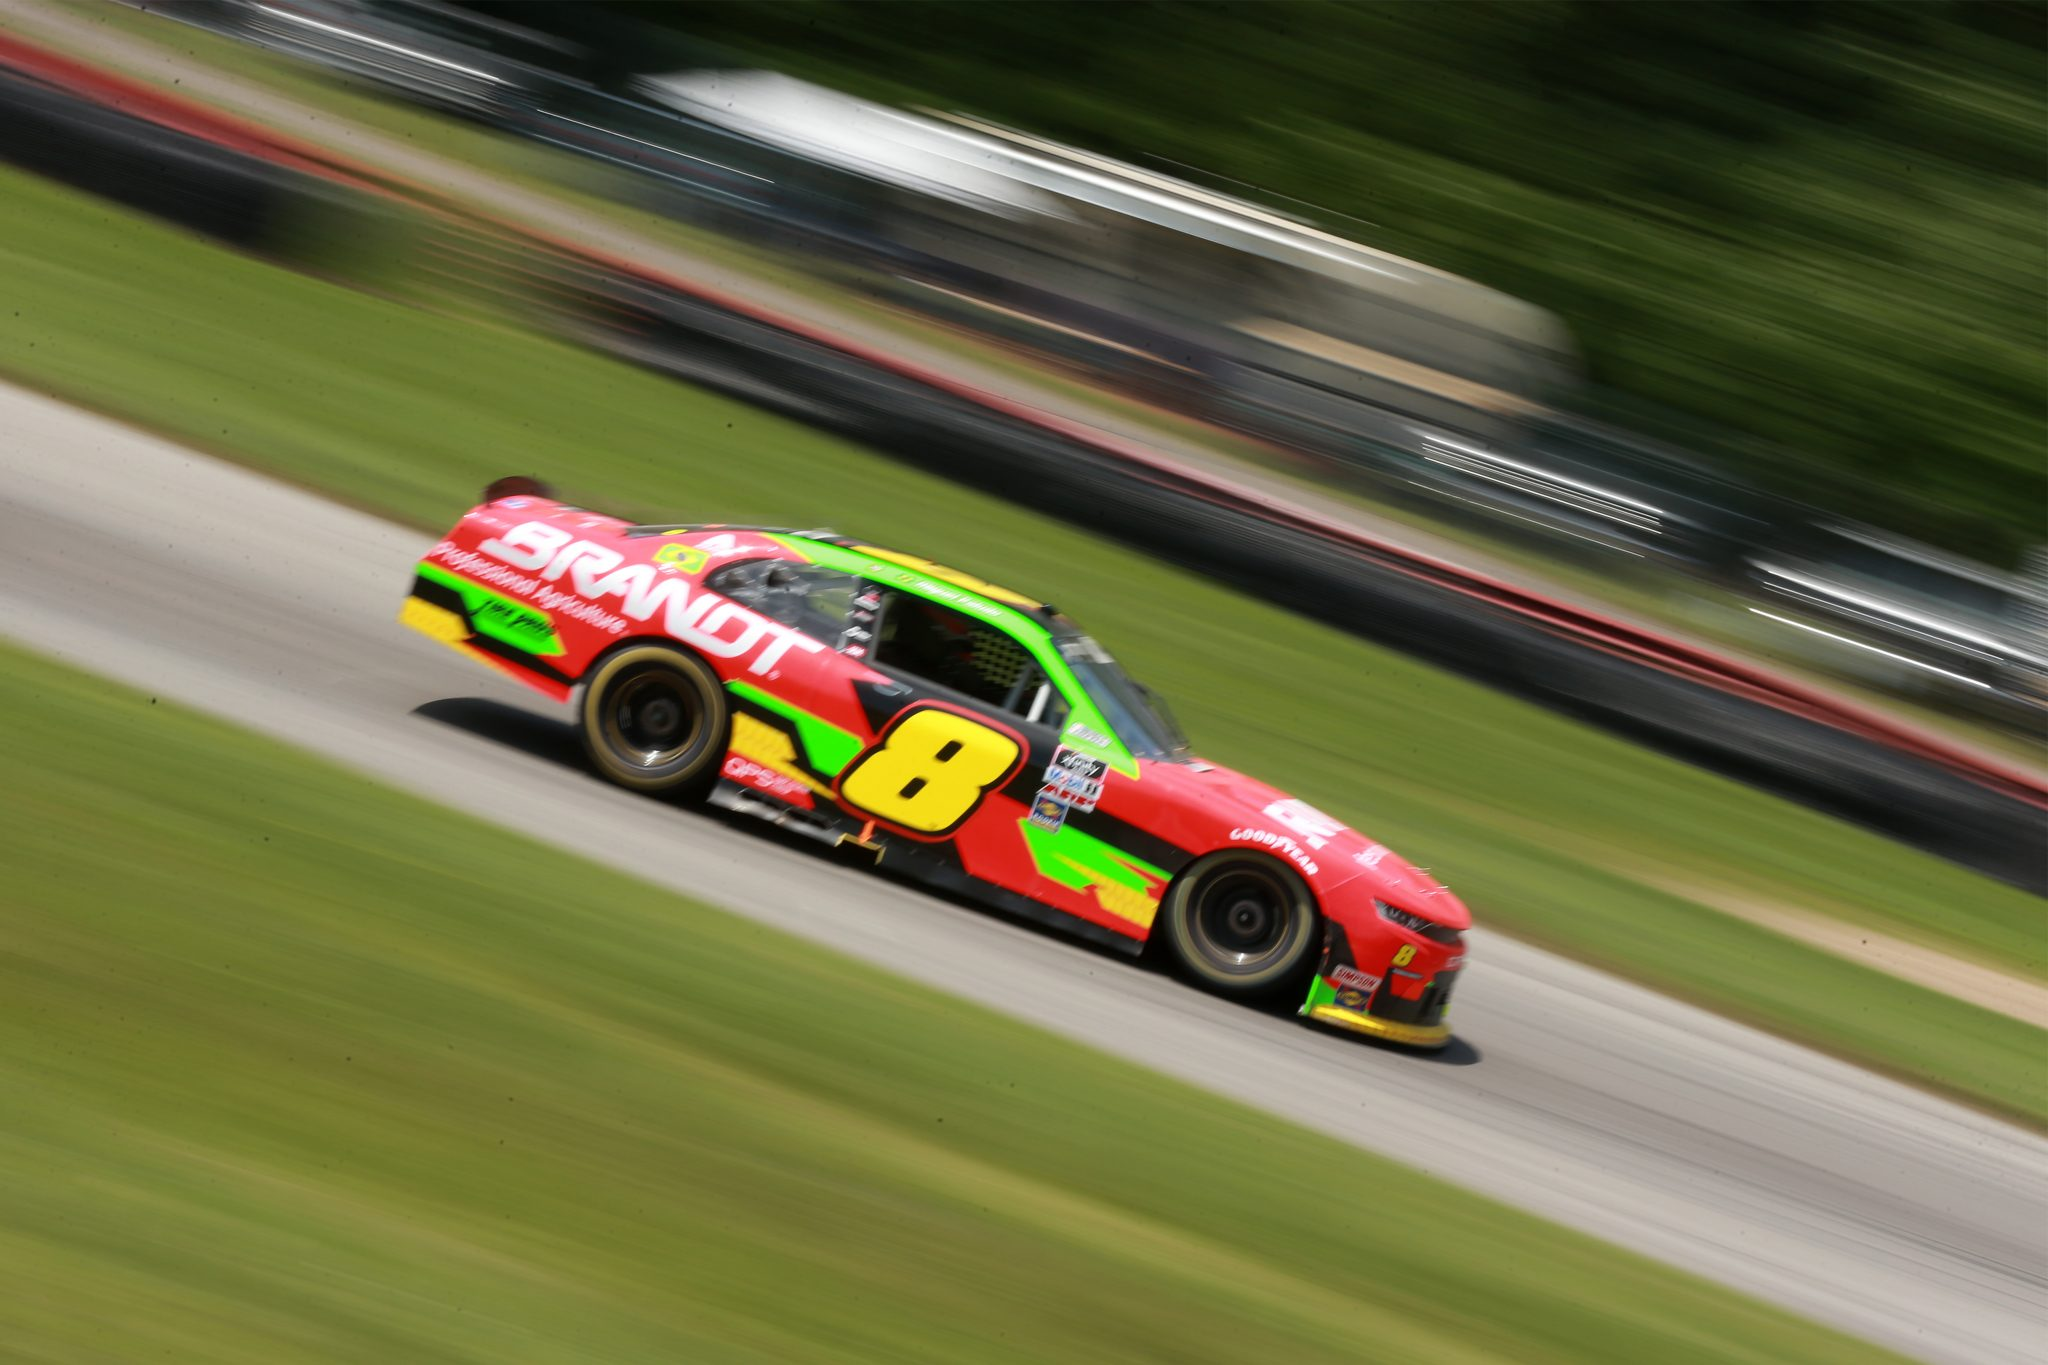 LEXINGTON, OHIO - JUNE 05: Miguel Paludo, driver of the #8 BRANDT Chevrolet, drives during the NASCAR Xfinity Series B&L Transport 170 at Mid-Ohio Sports Car Course on June 05, 2021 in Lexington, Ohio. (Photo by Sean Gardner/Getty Images) | Getty Images